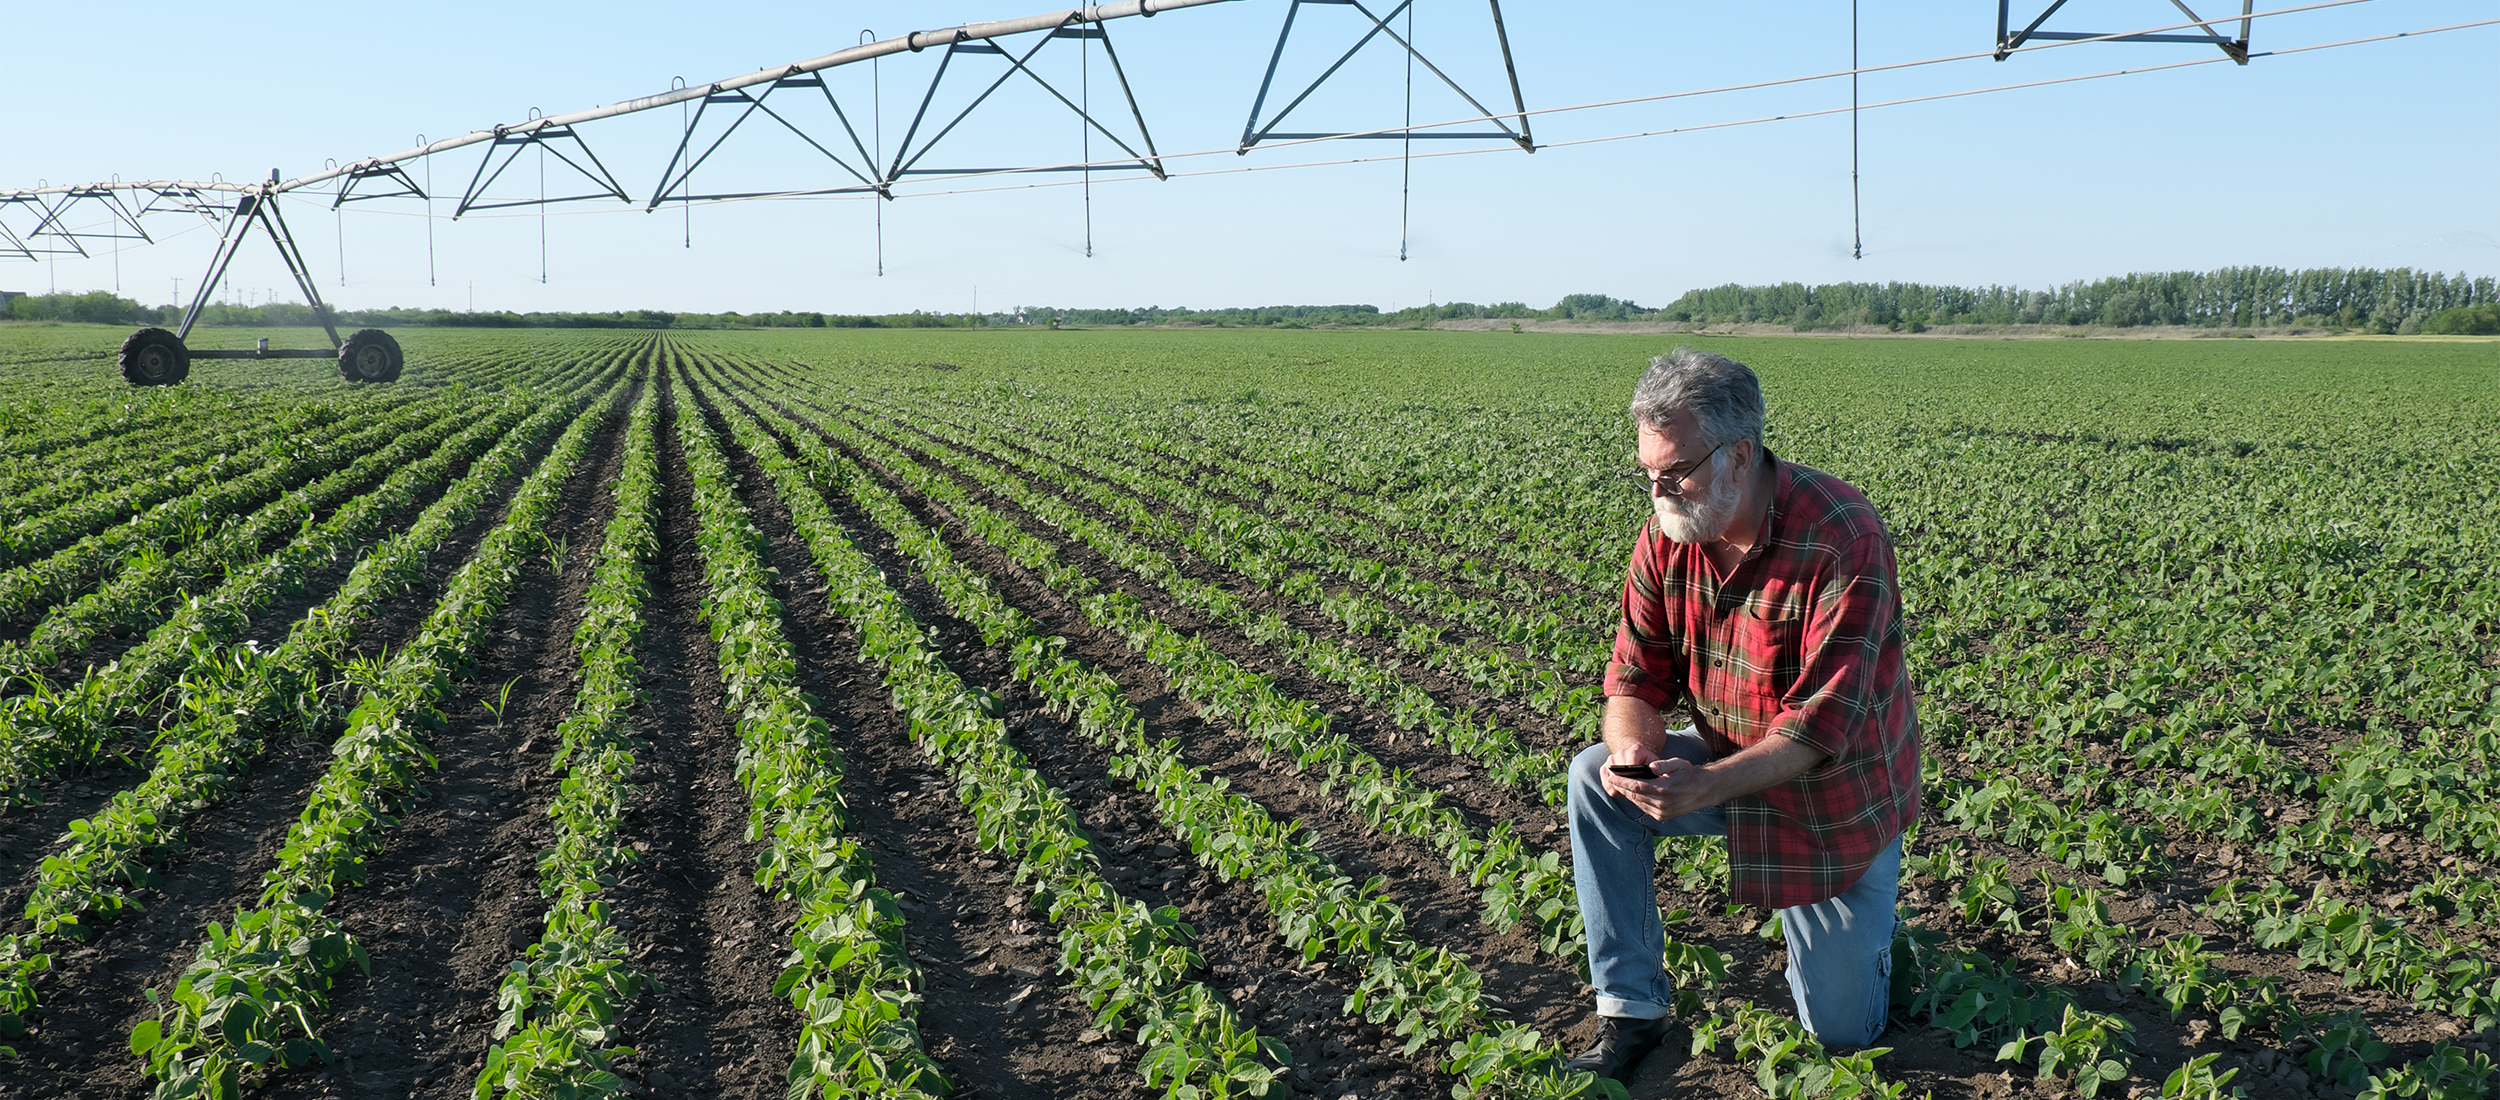 AquaSpy's Moeller: Agriculture is a Vertical Business; Tracking Weather is Not Enough